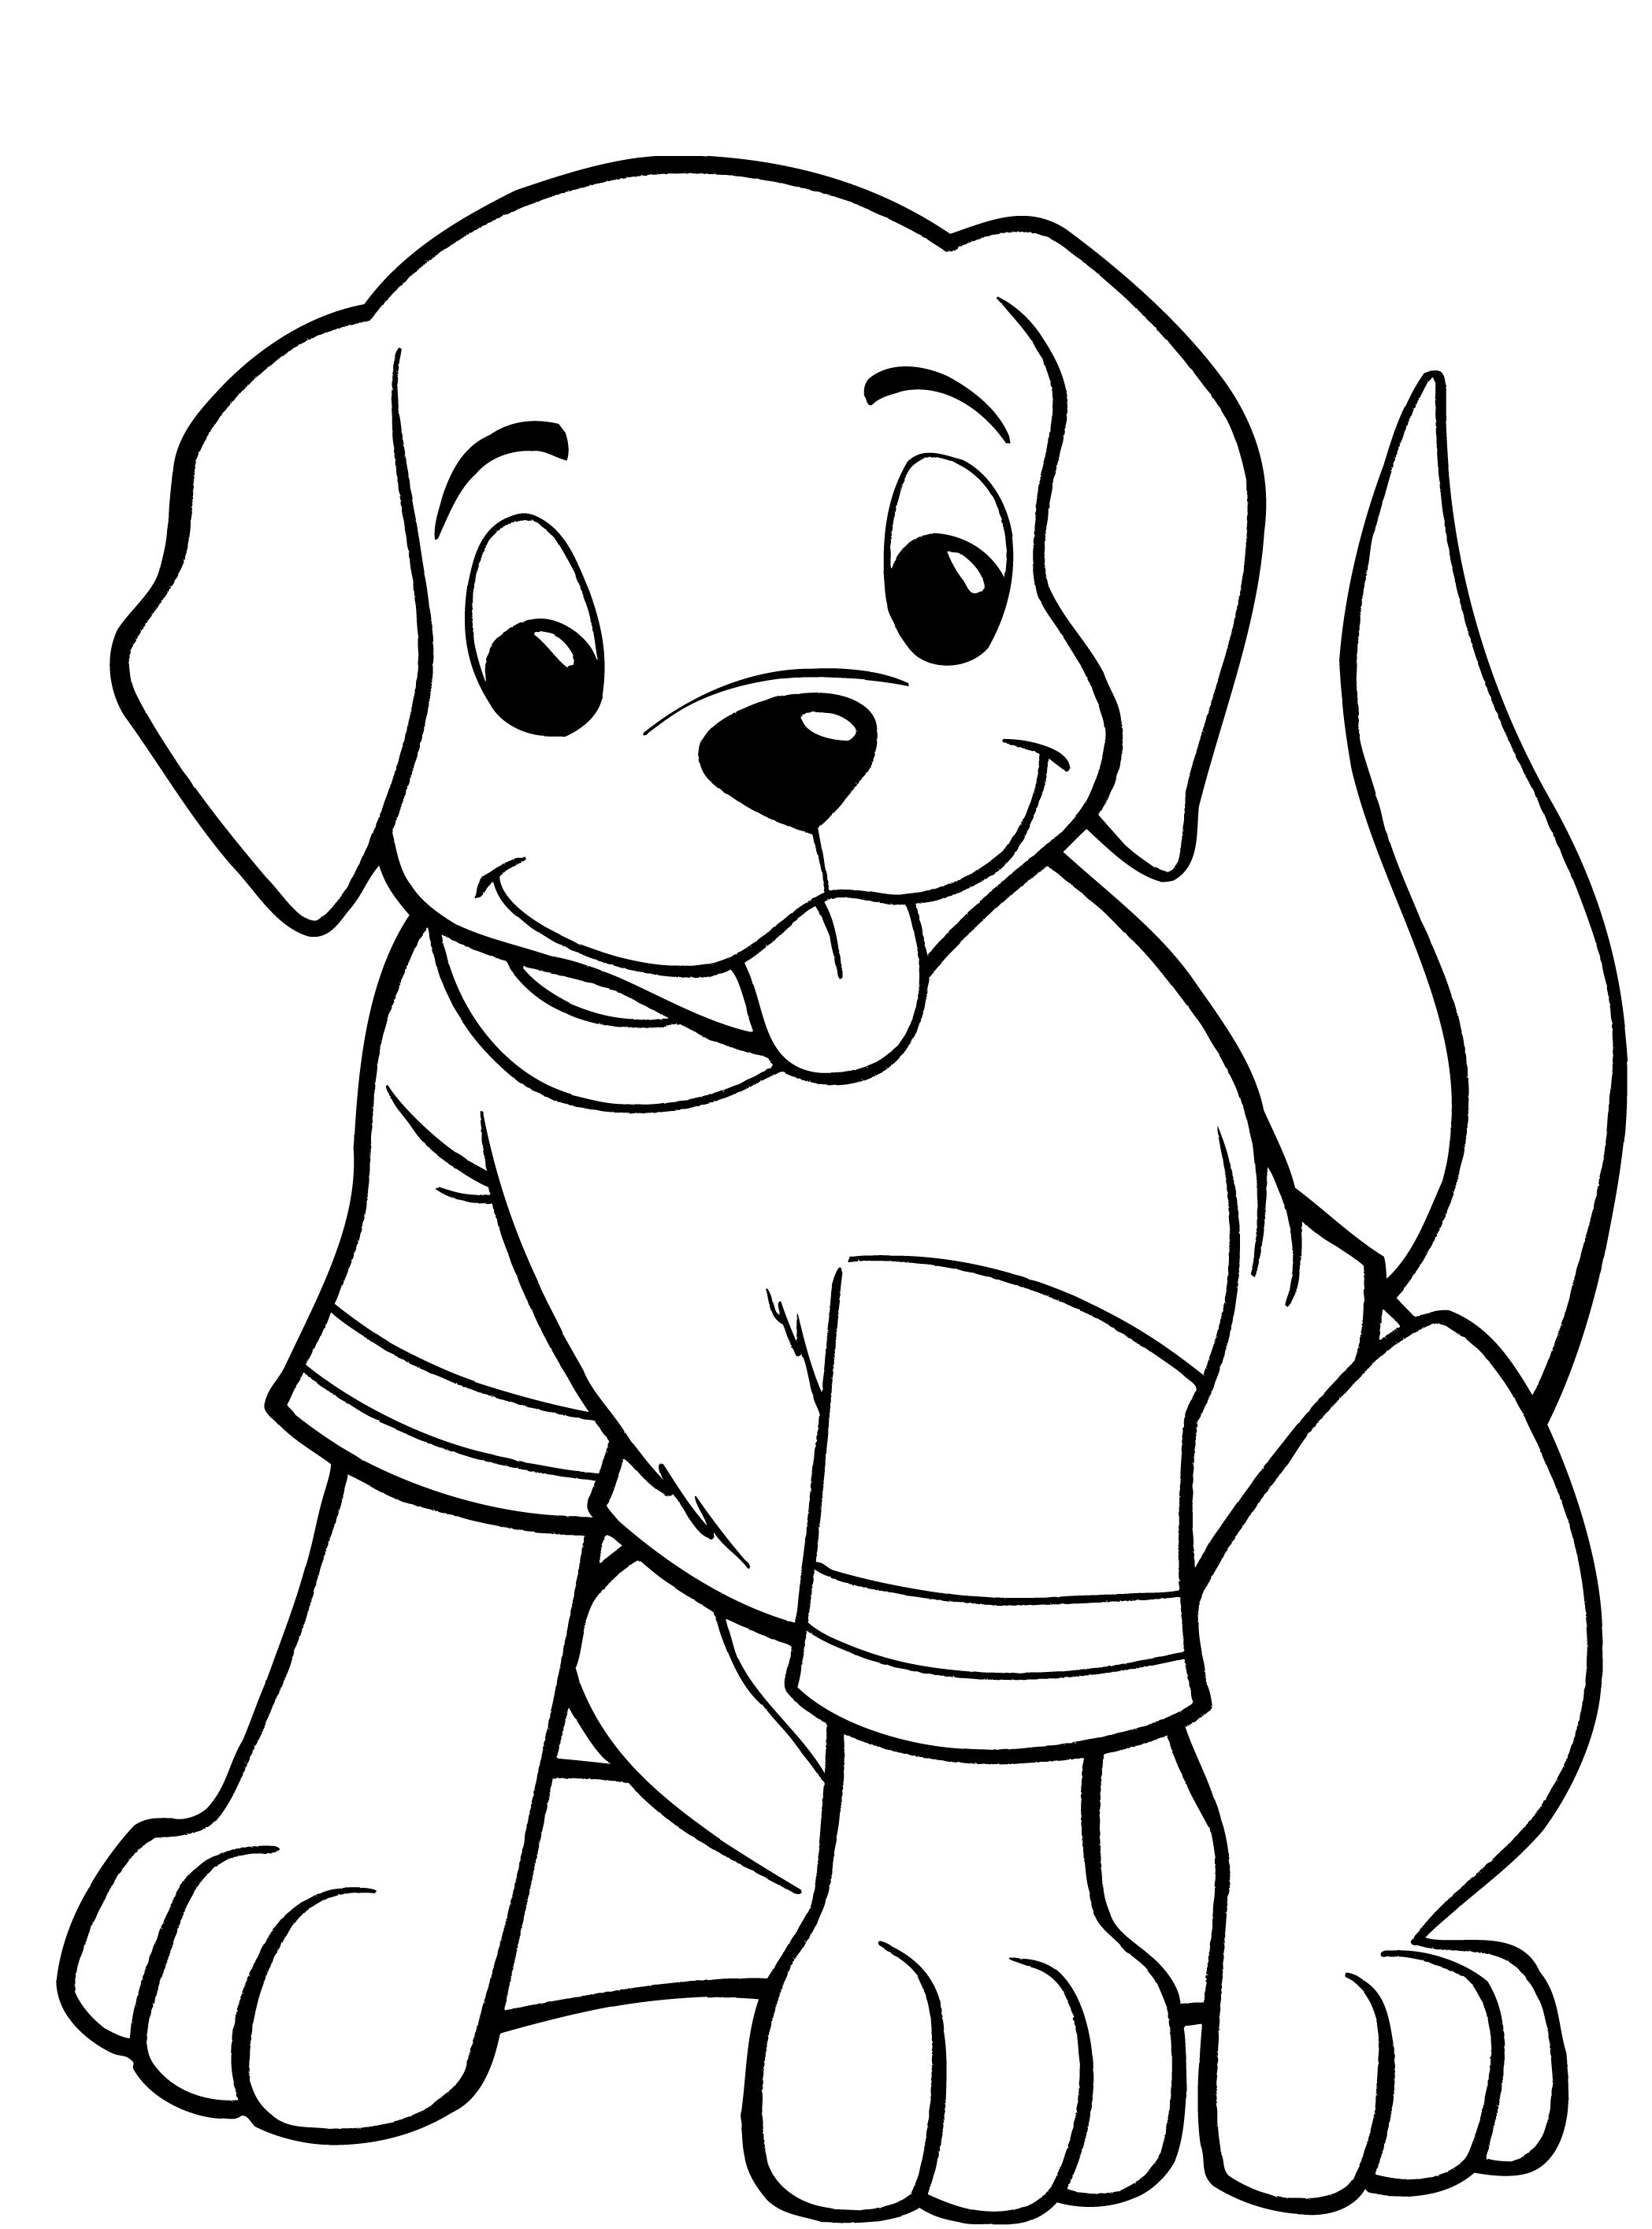 Dogs Coloring Pages  Dog Coloring Pages For Kids Preschool and Kindergarten